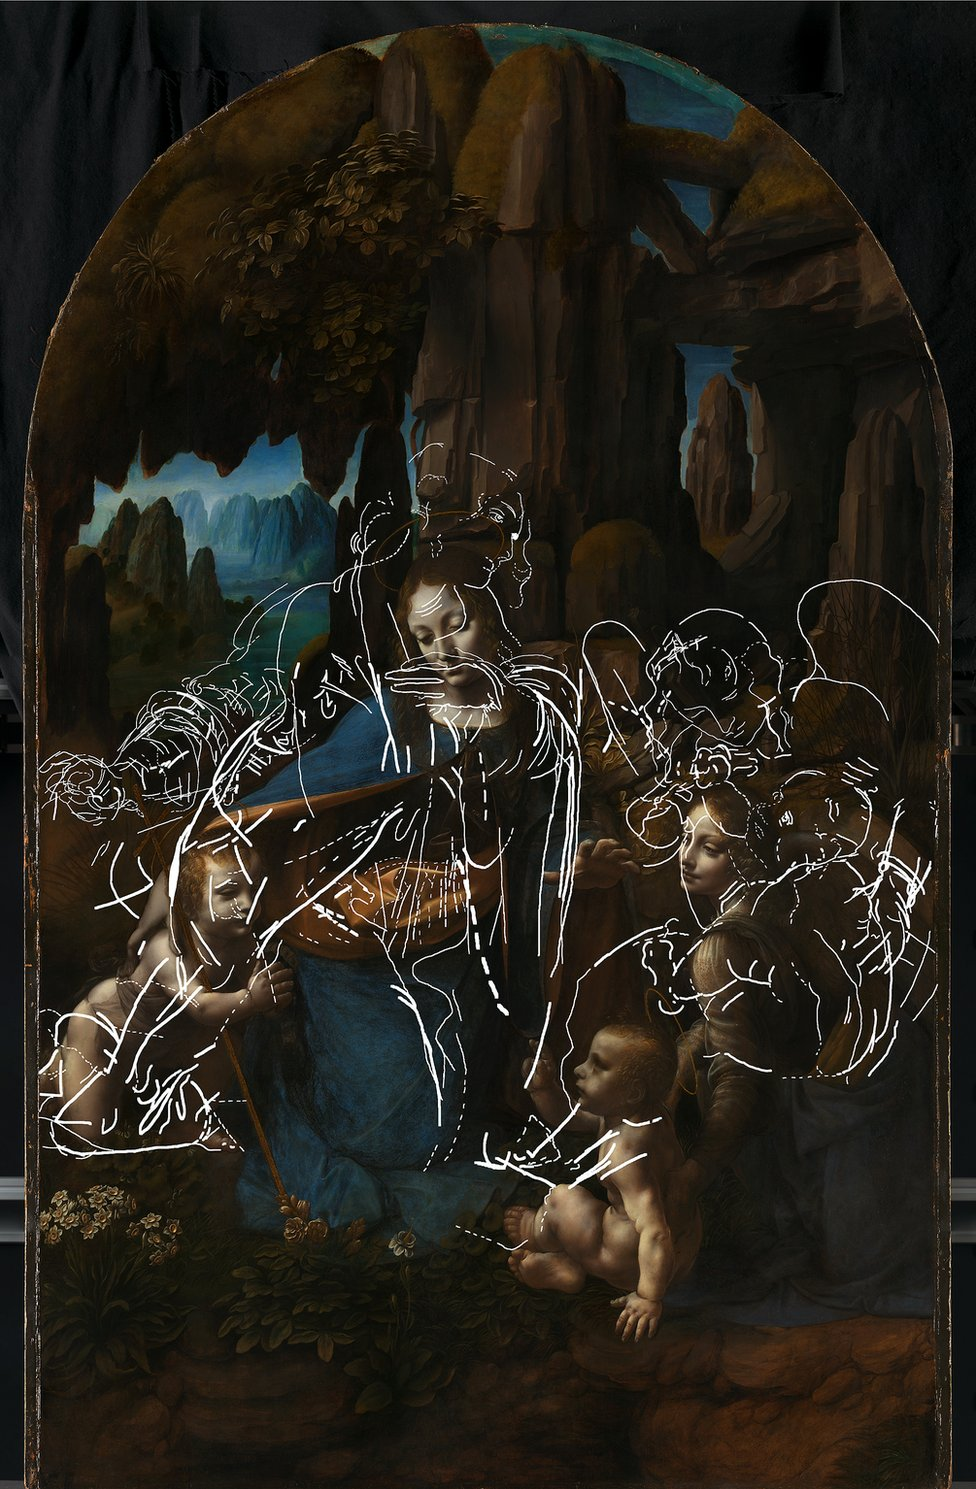 Scientific research at the National Gallery led to the discovery of this drawing underneath The Virgin of the Rocks